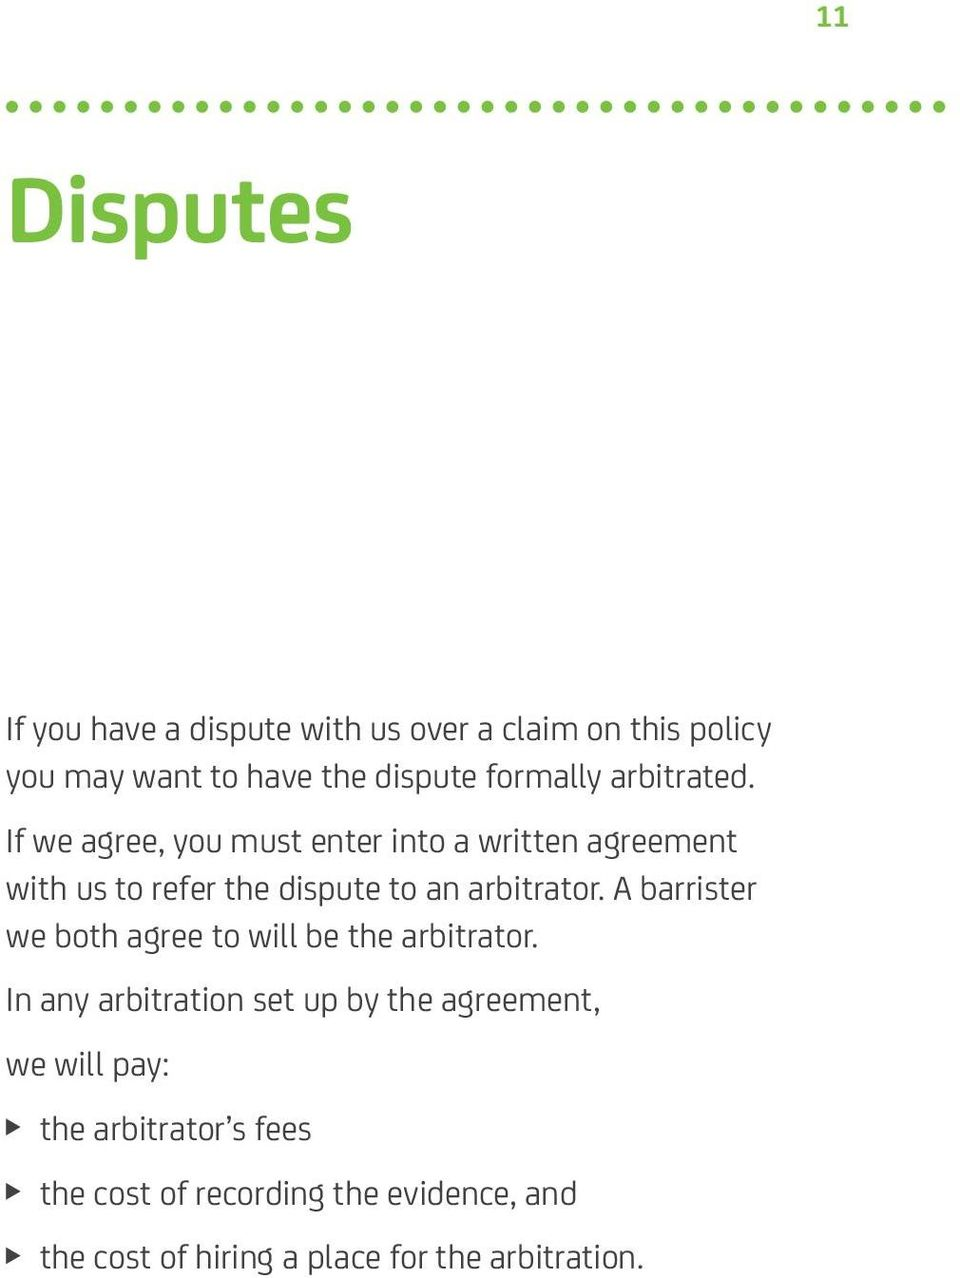 If we agree, you must enter into a written agreement with us to refer the dispute to an arbitrator.